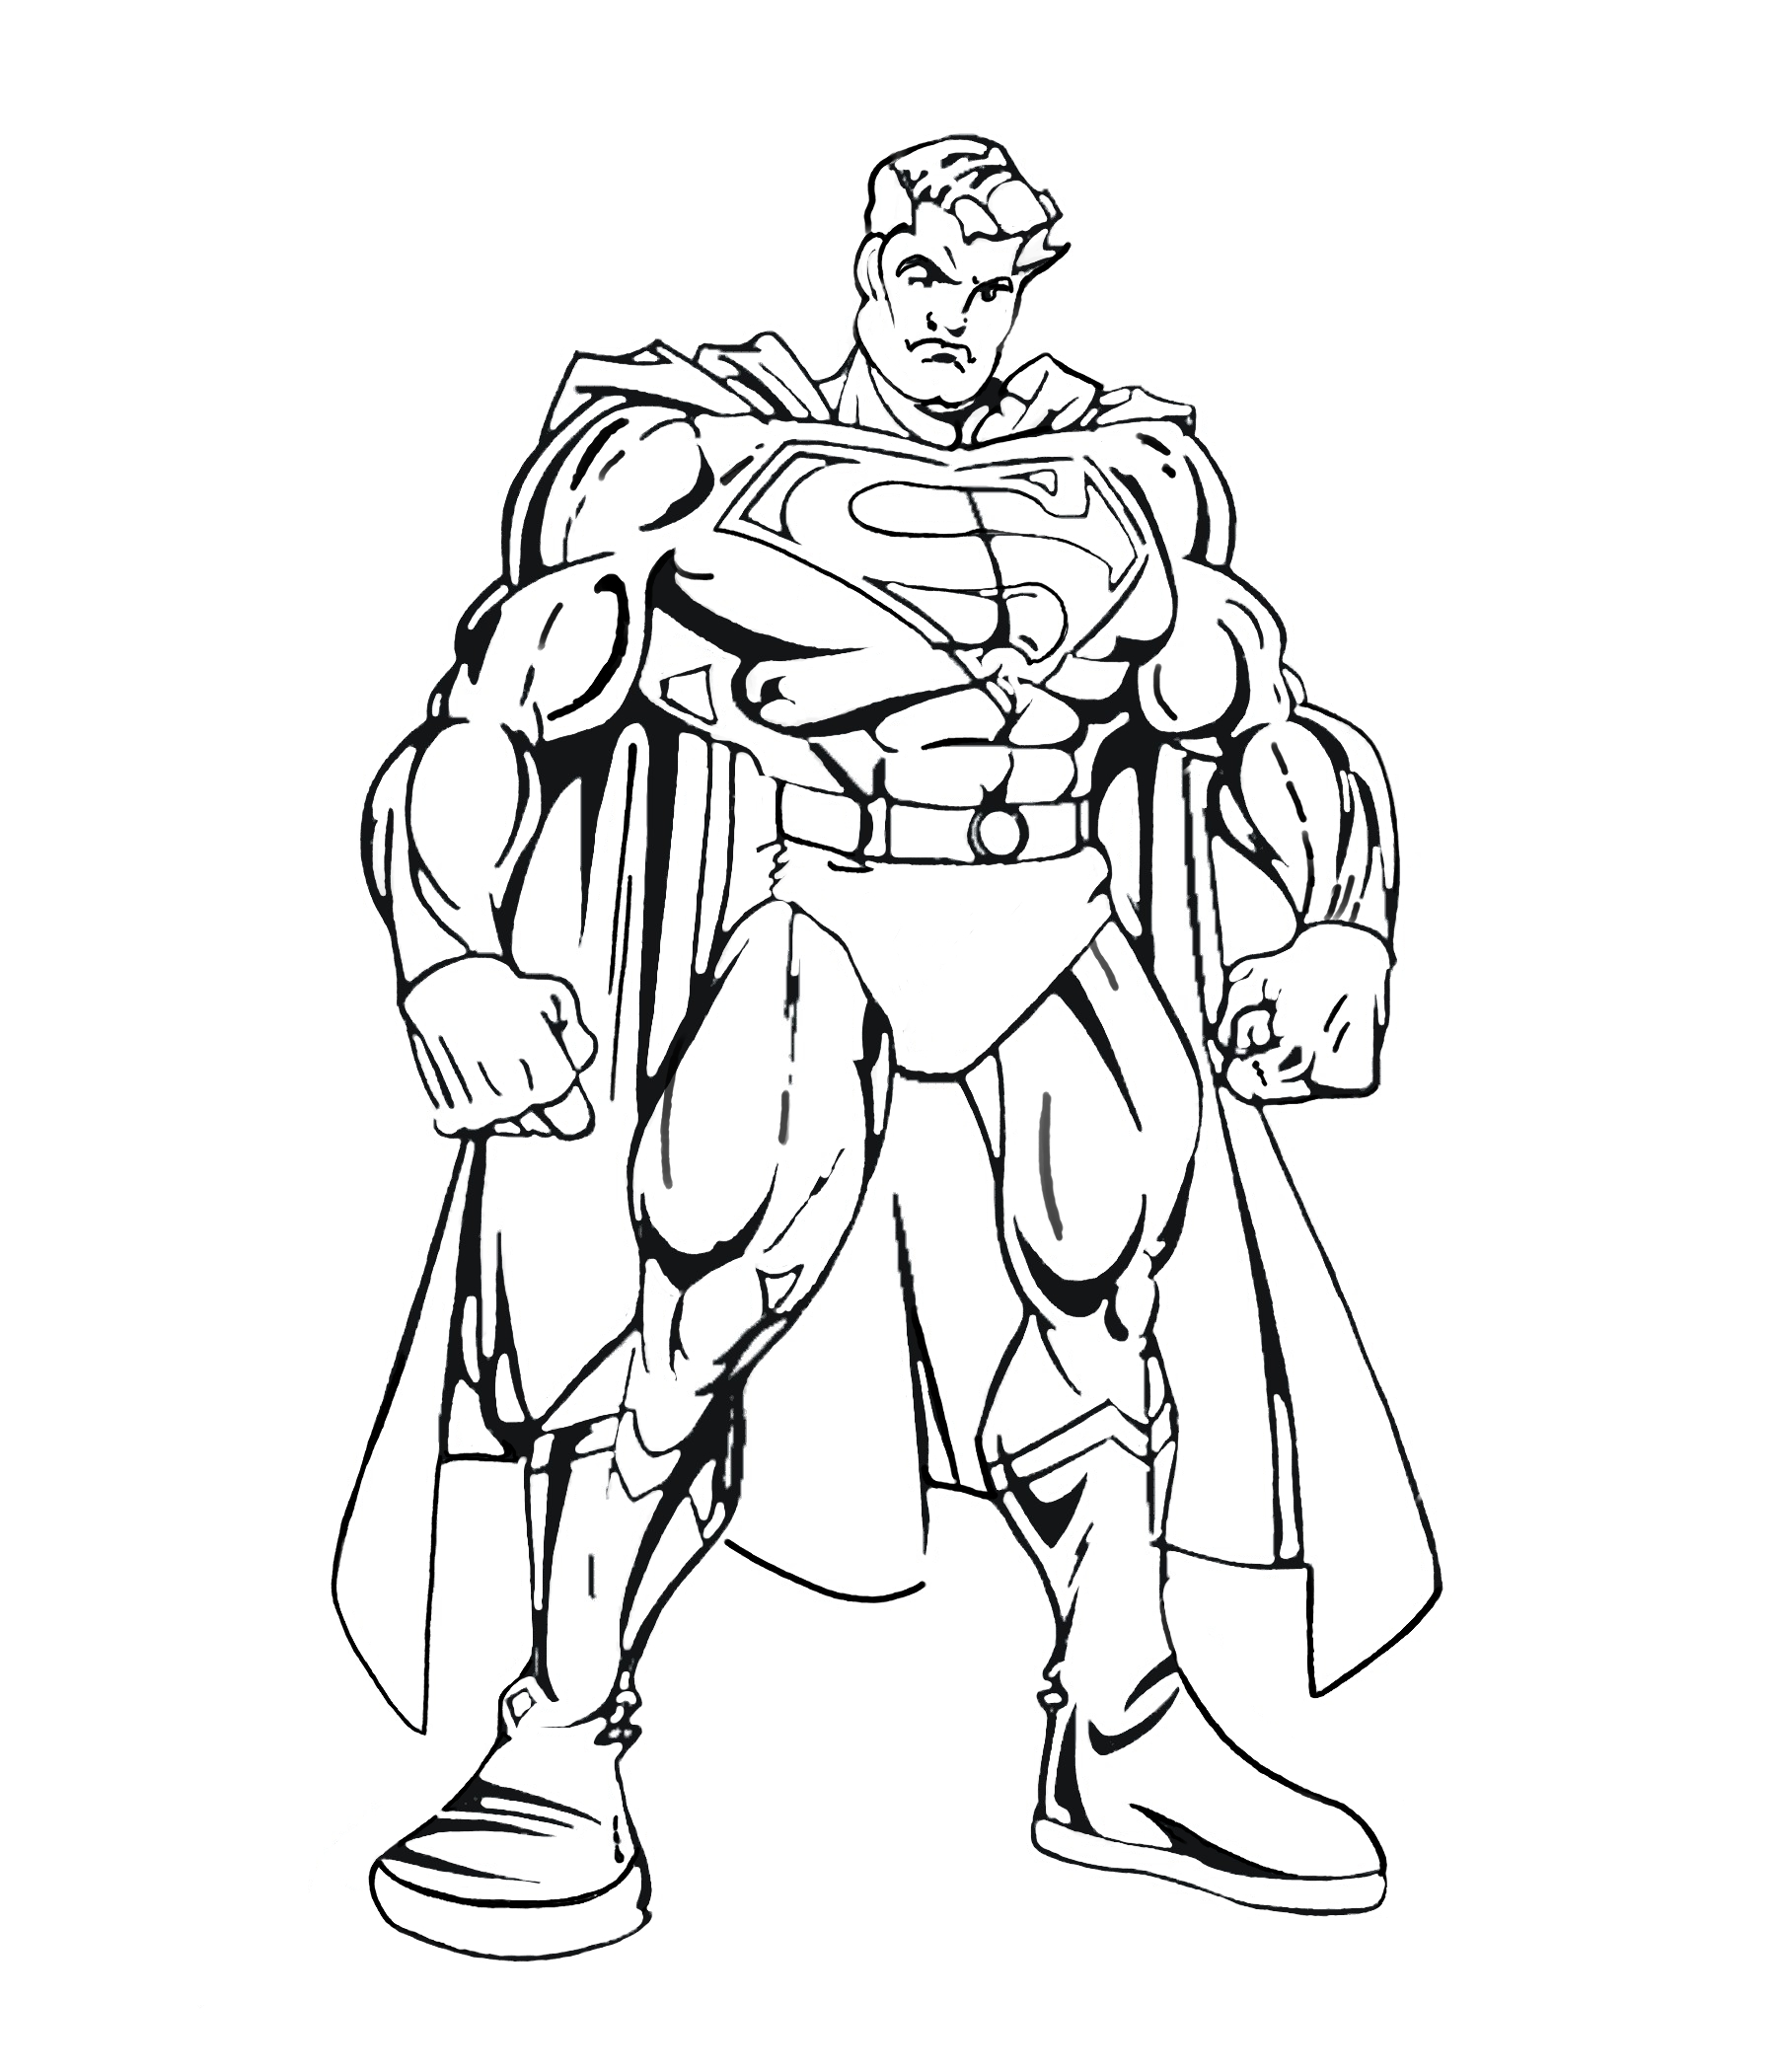 Superman 5 coloriage superman coloriages pour enfants - Image batman a colorier ...